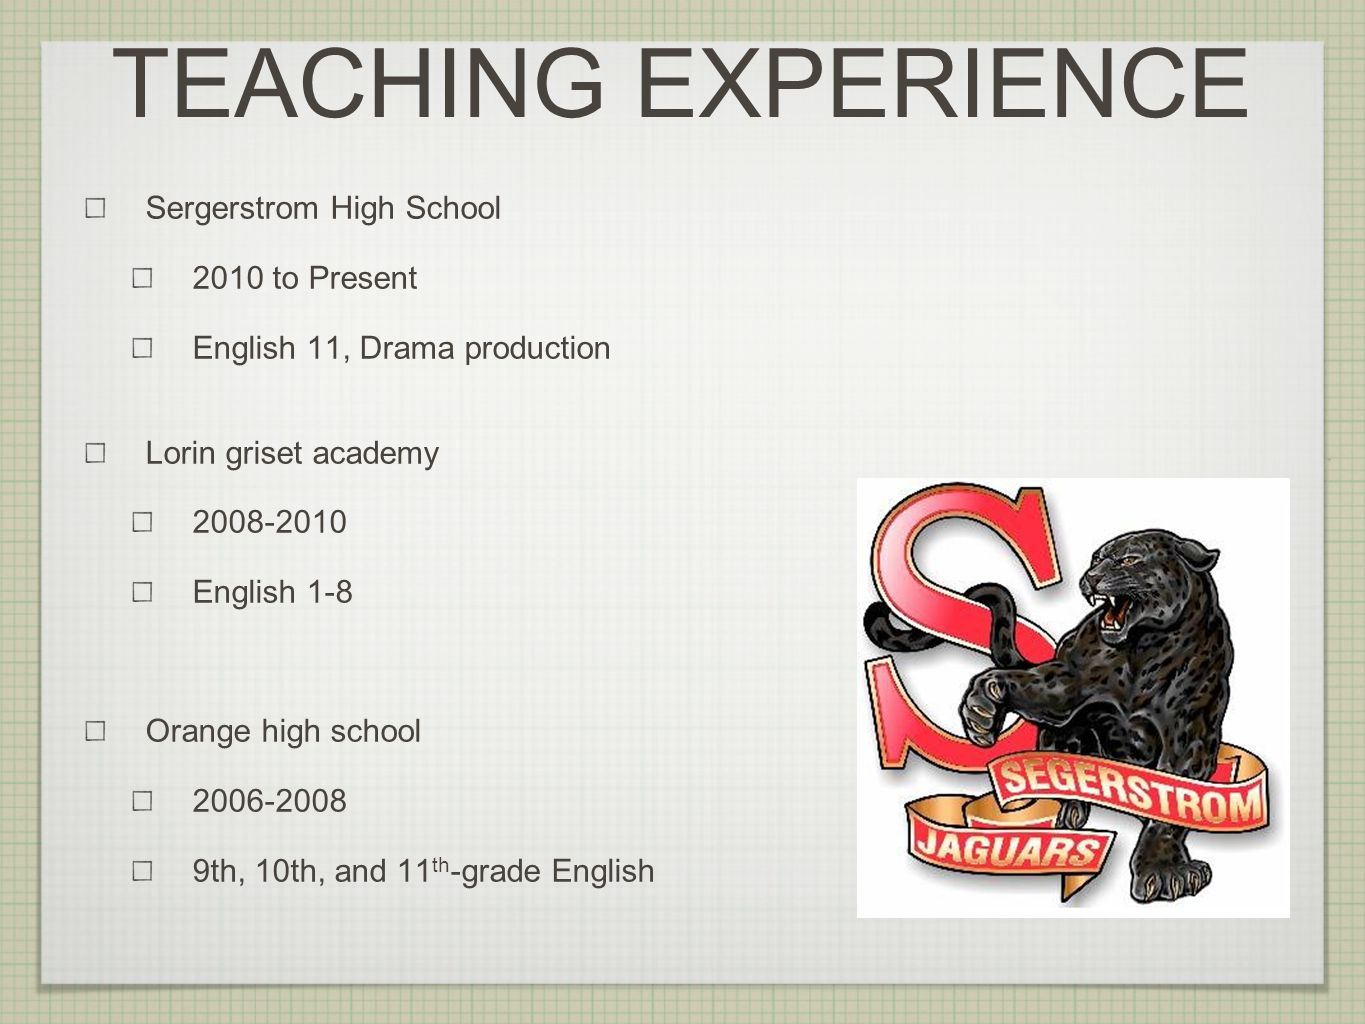 Sergerstrom High School 2010 to Present English 11, Drama production Lorin griset academy 2008-2010 English 1-8 Orange high school 2006-2008 9th, 10th, and 11 th -grade English TEACHING EXPERIENCE